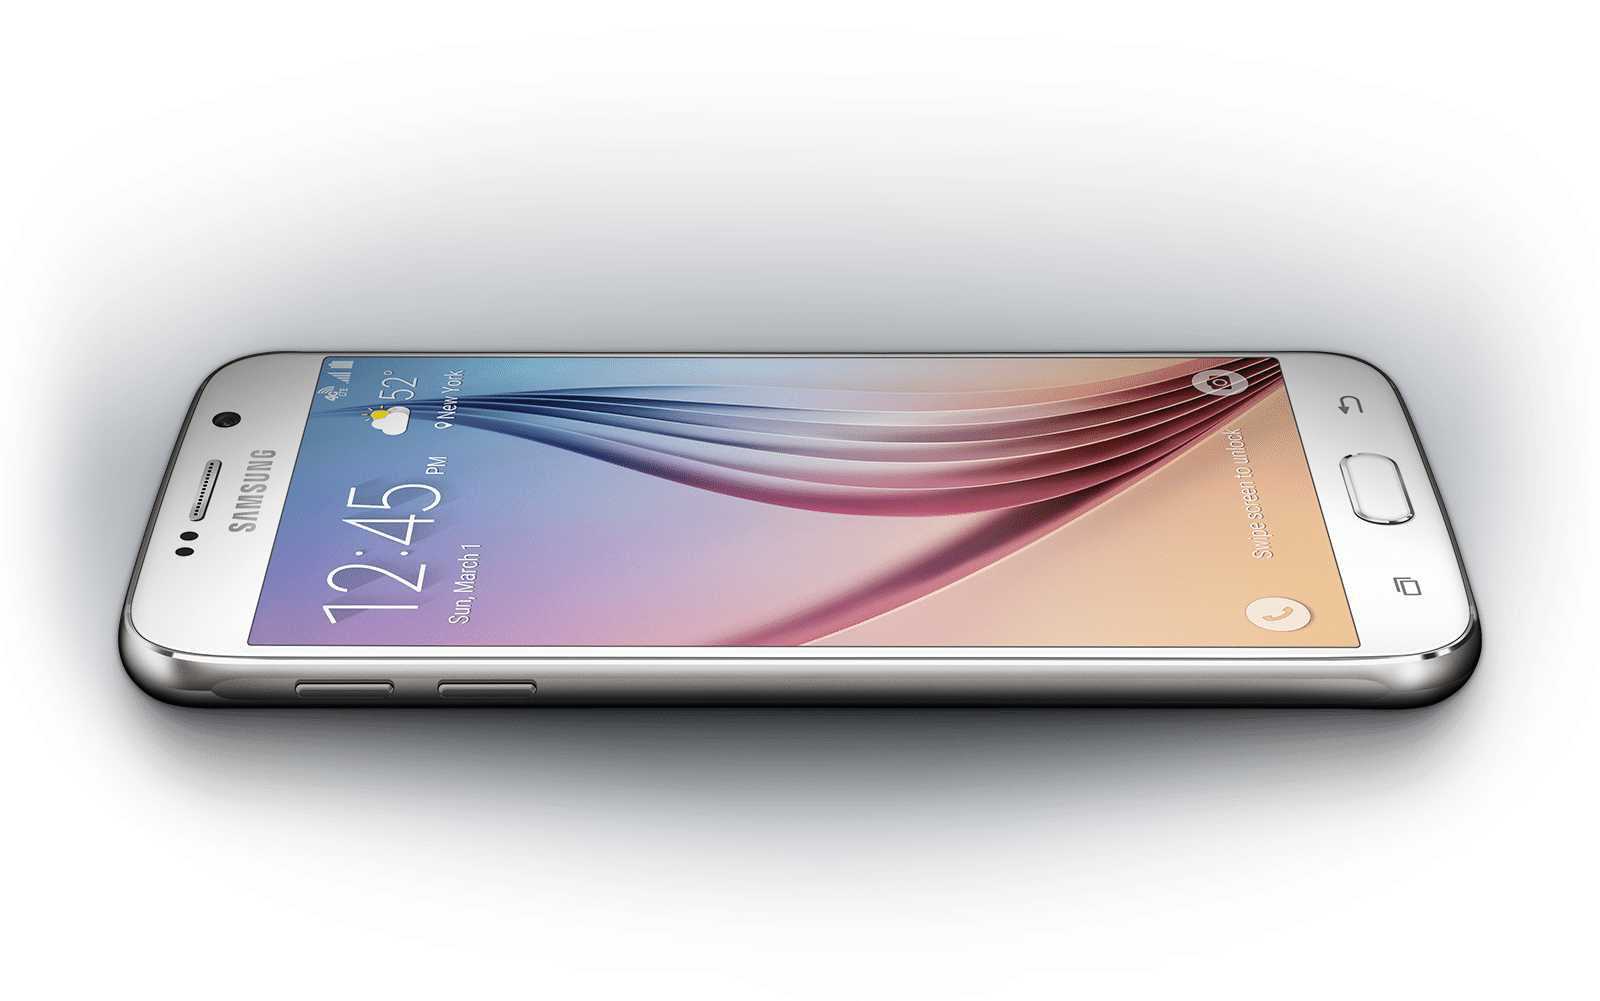 Samsung-Galaxy-S6-official-images (2)-compressed